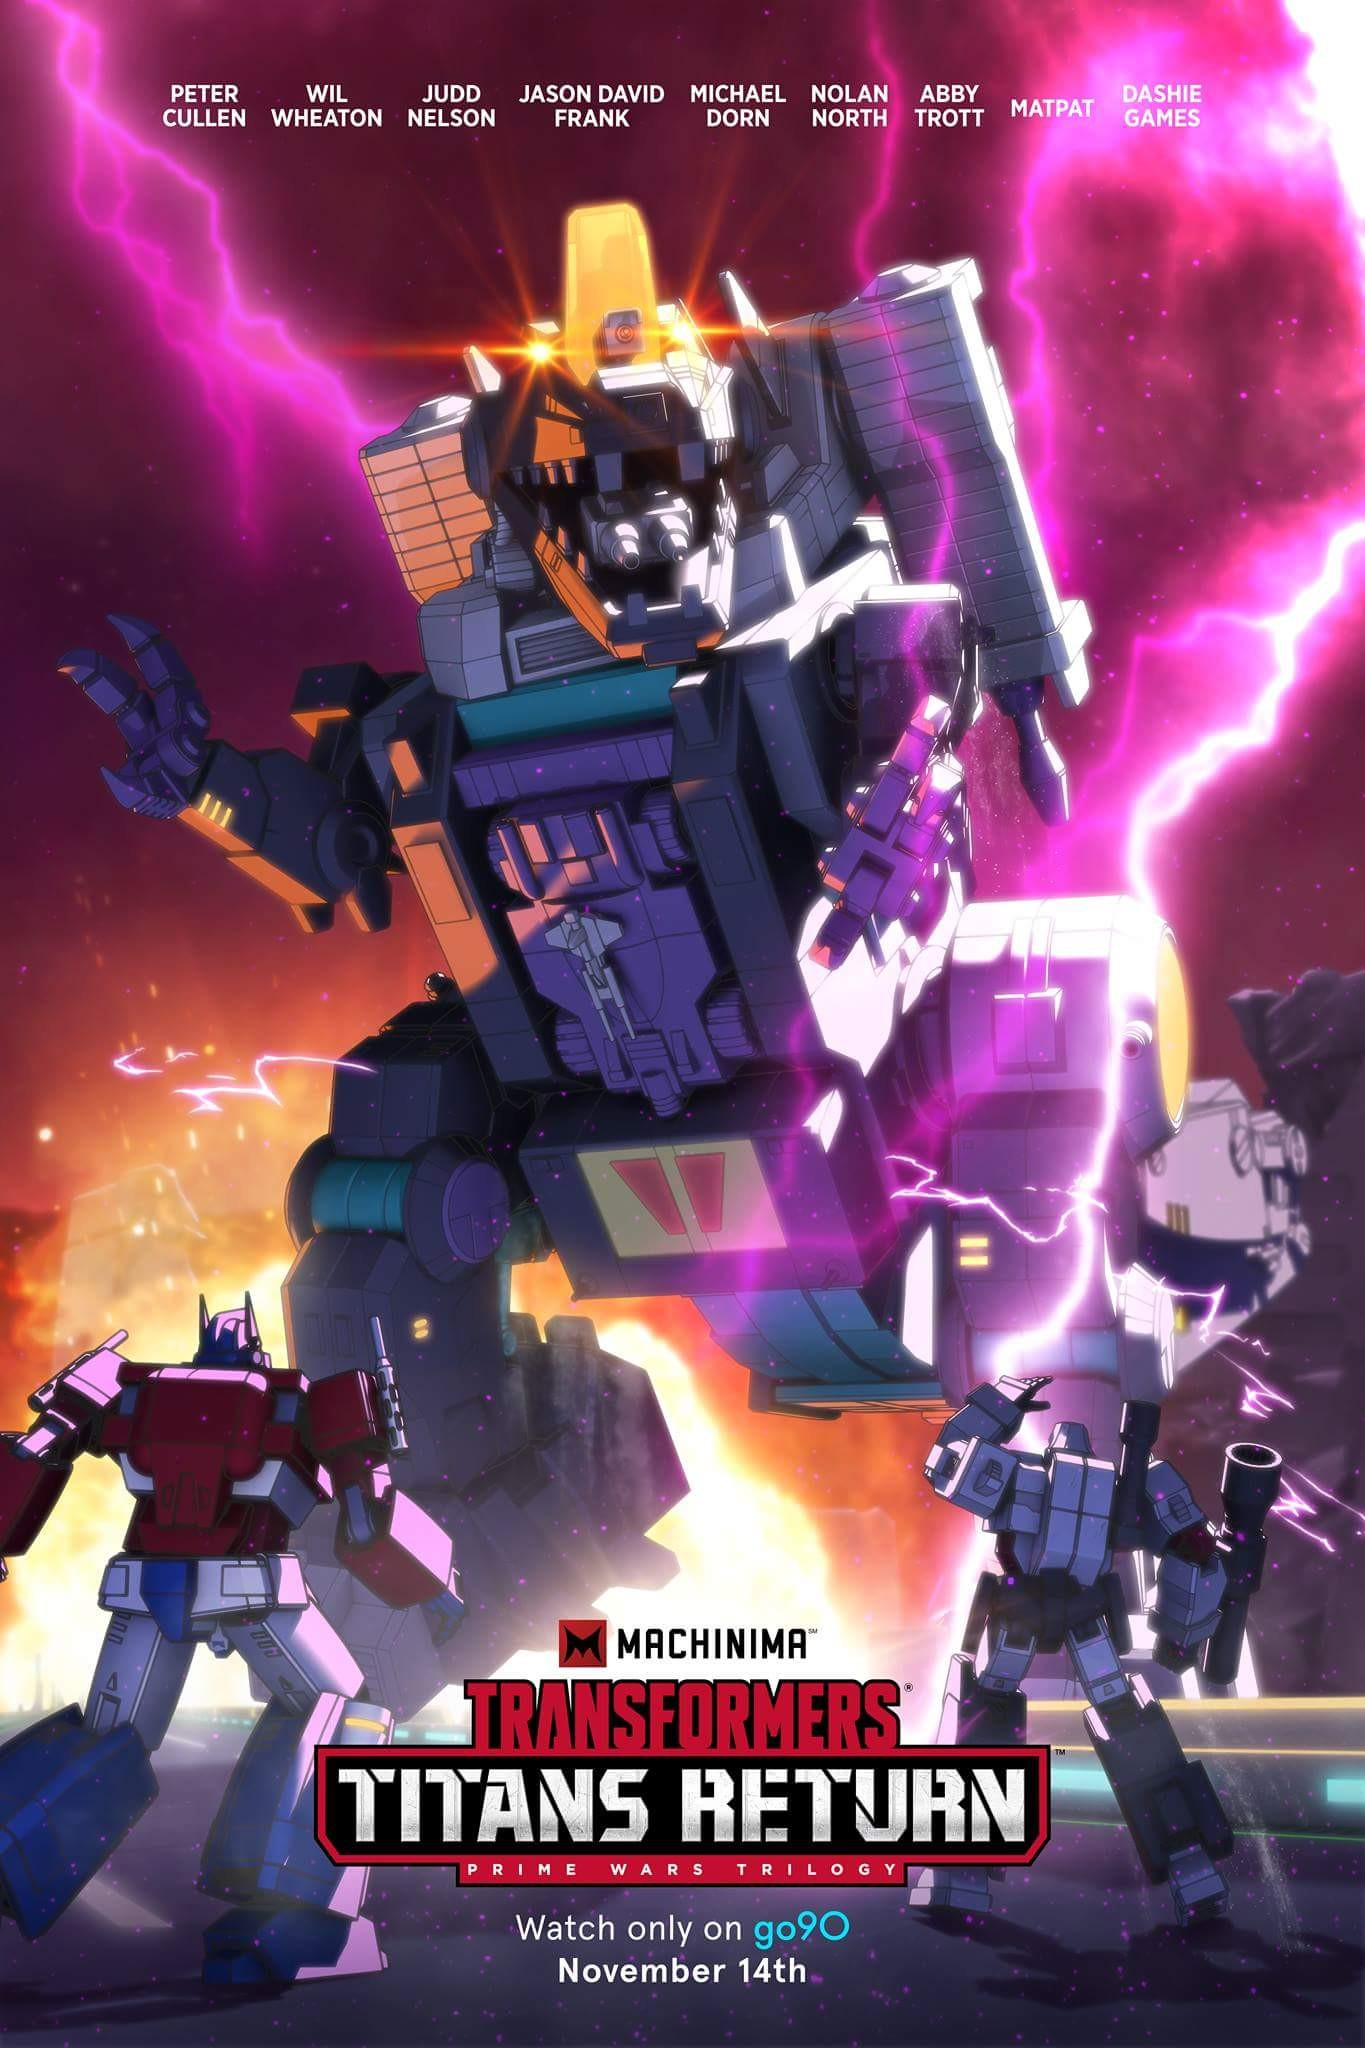 Transformers News: Re: Machinima Transformers Titans Return Animated Series Discussion Thread